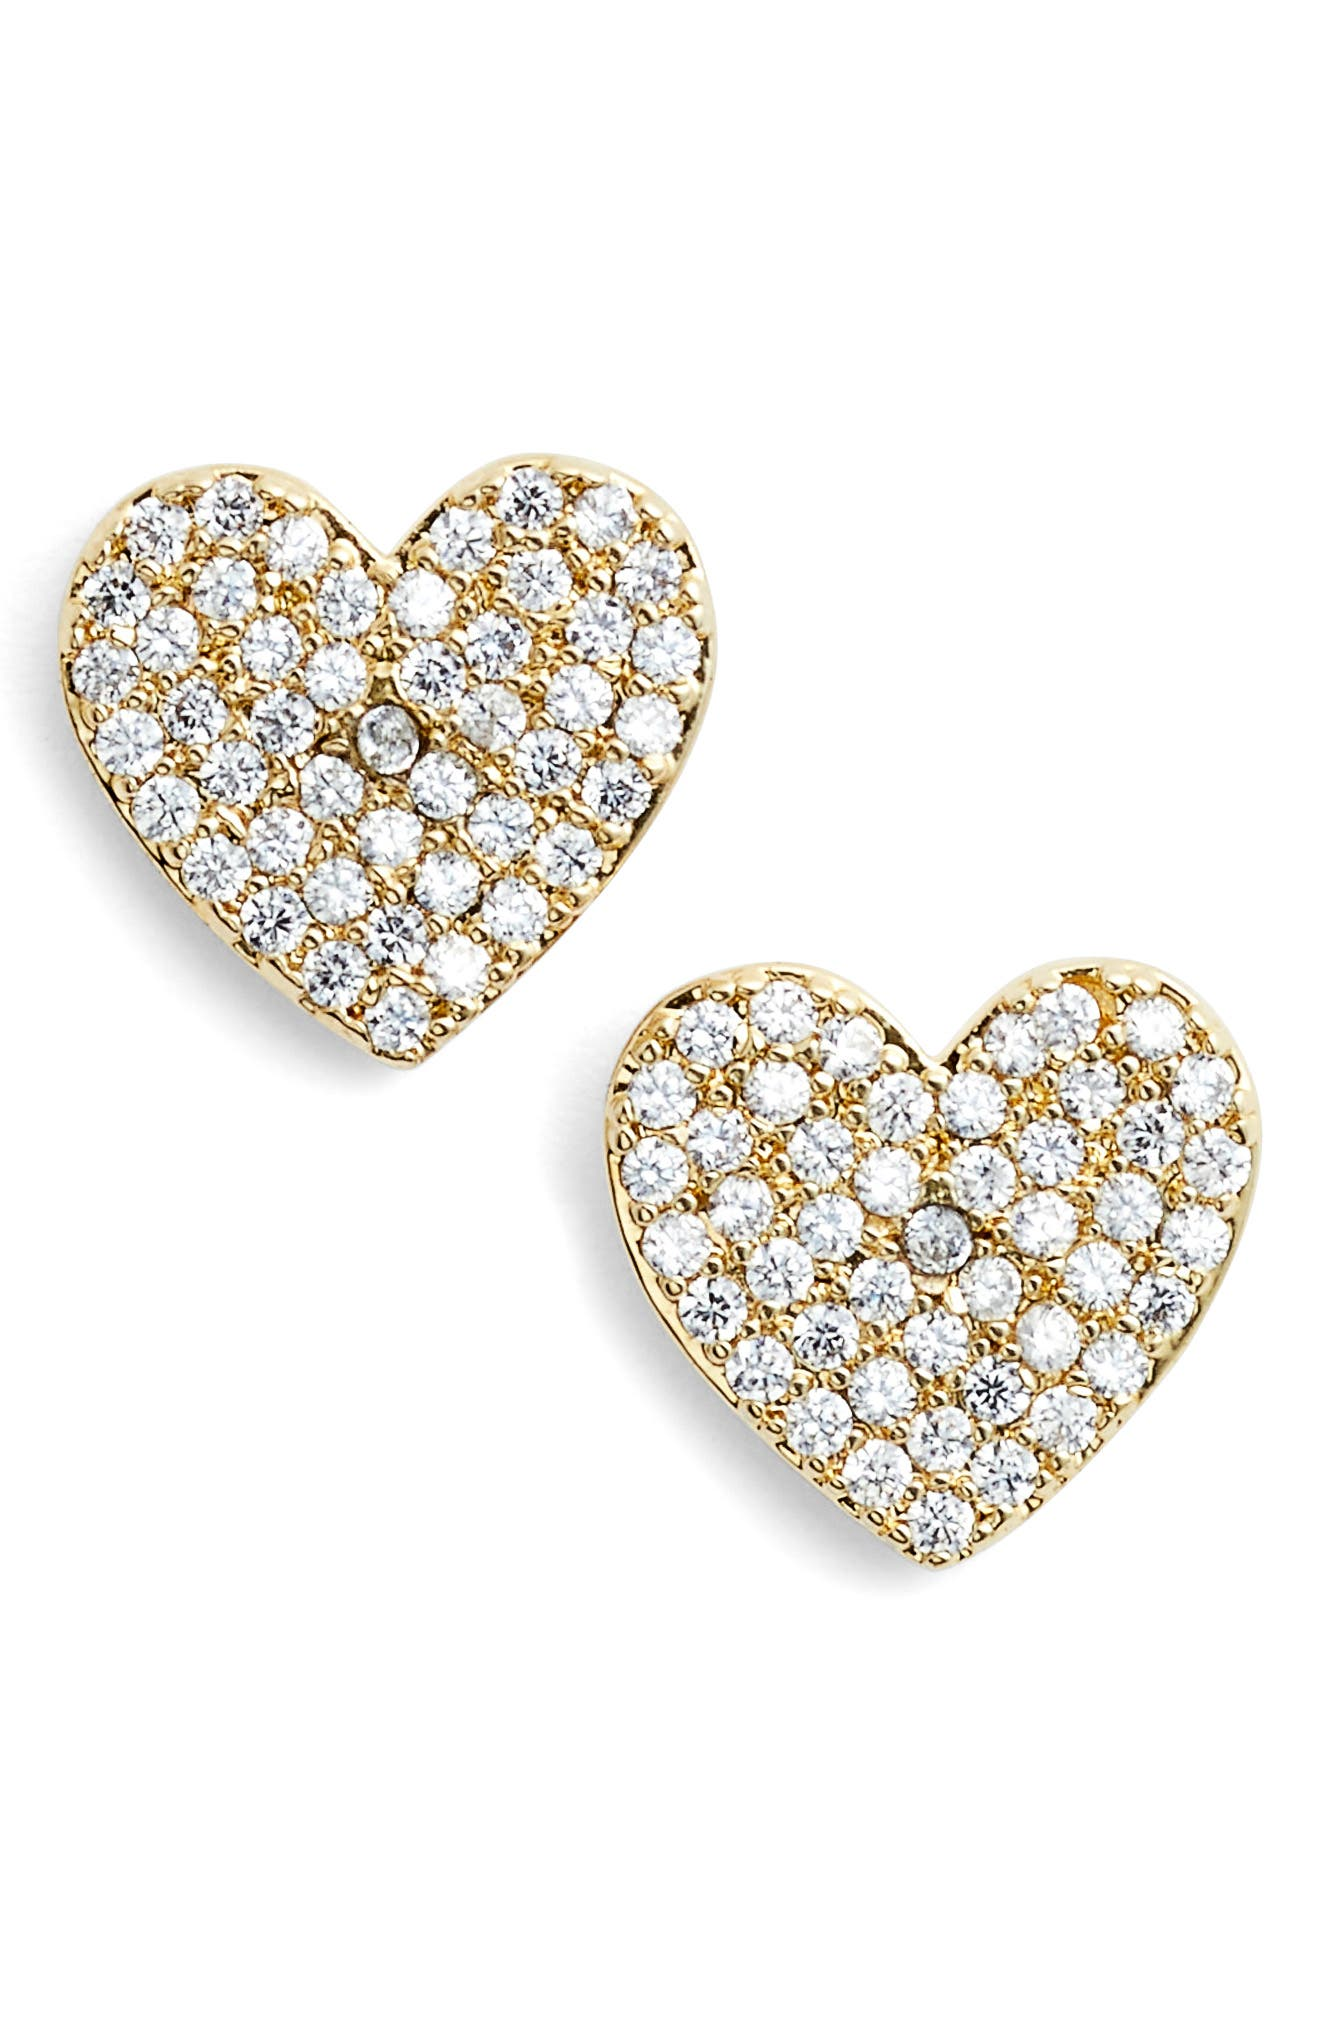 Alternate Image 1 Selected - kate spade new york yours truly pave heart stud earrings